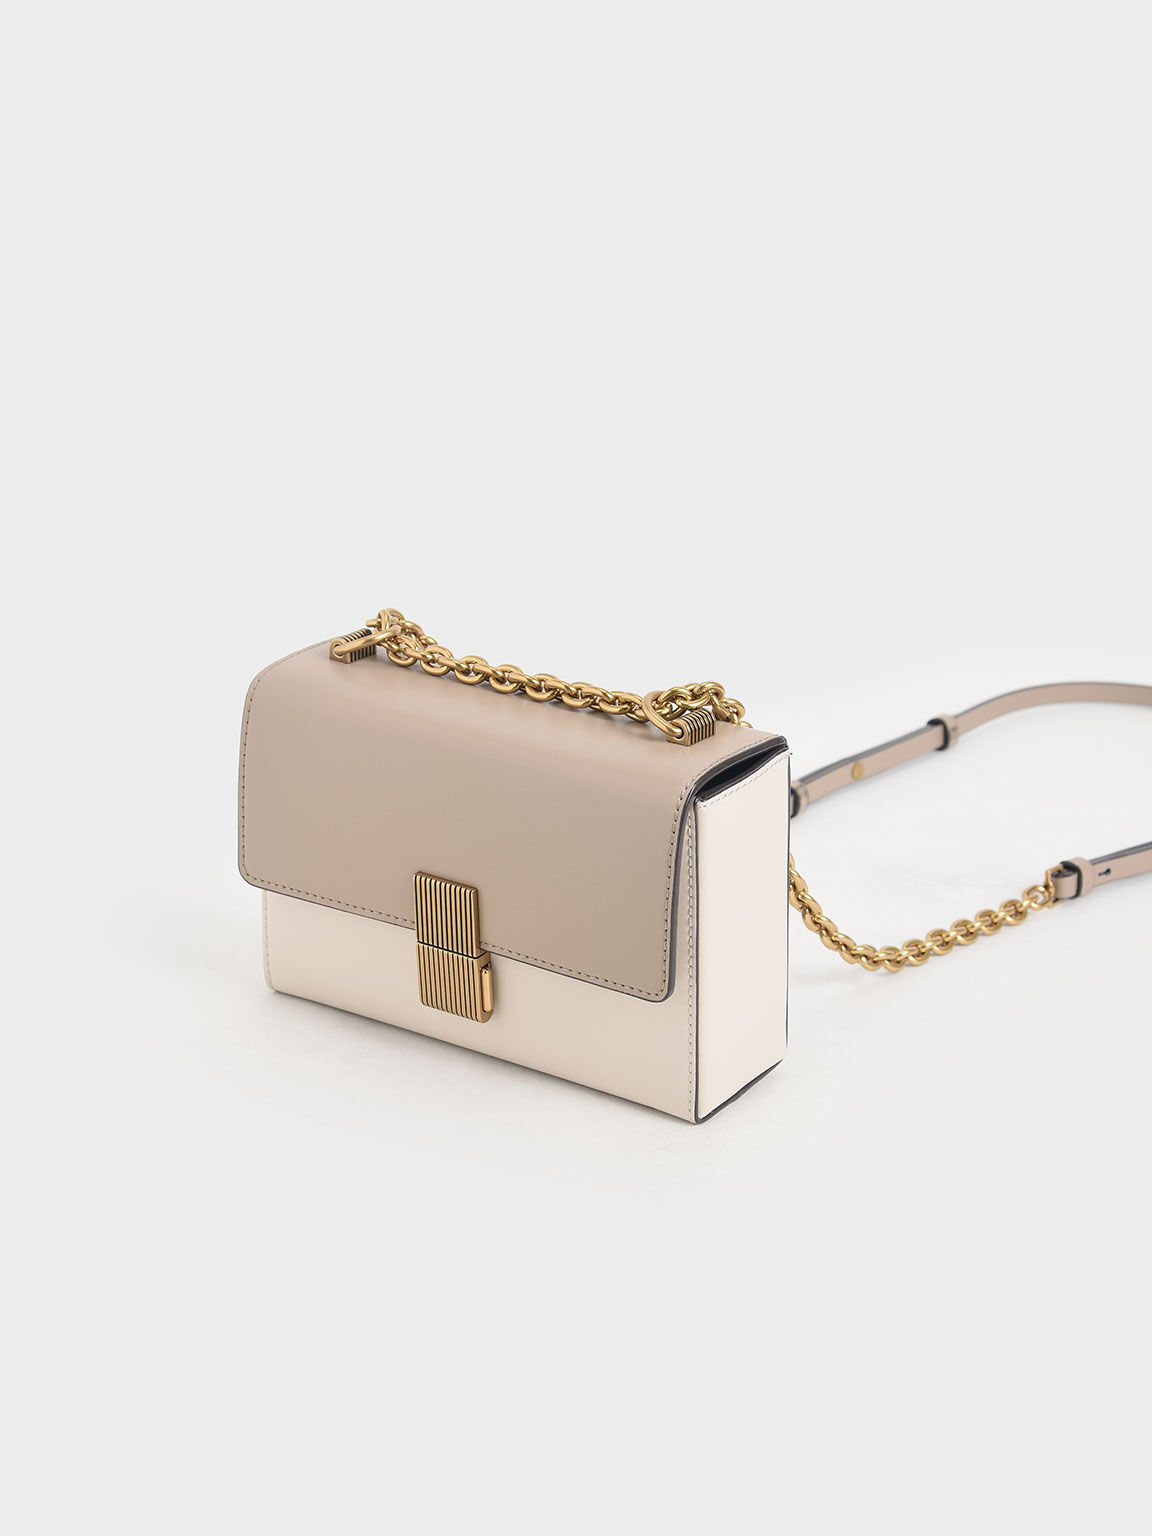 Metallic Push-Lock Clutch, Sand, hi-res